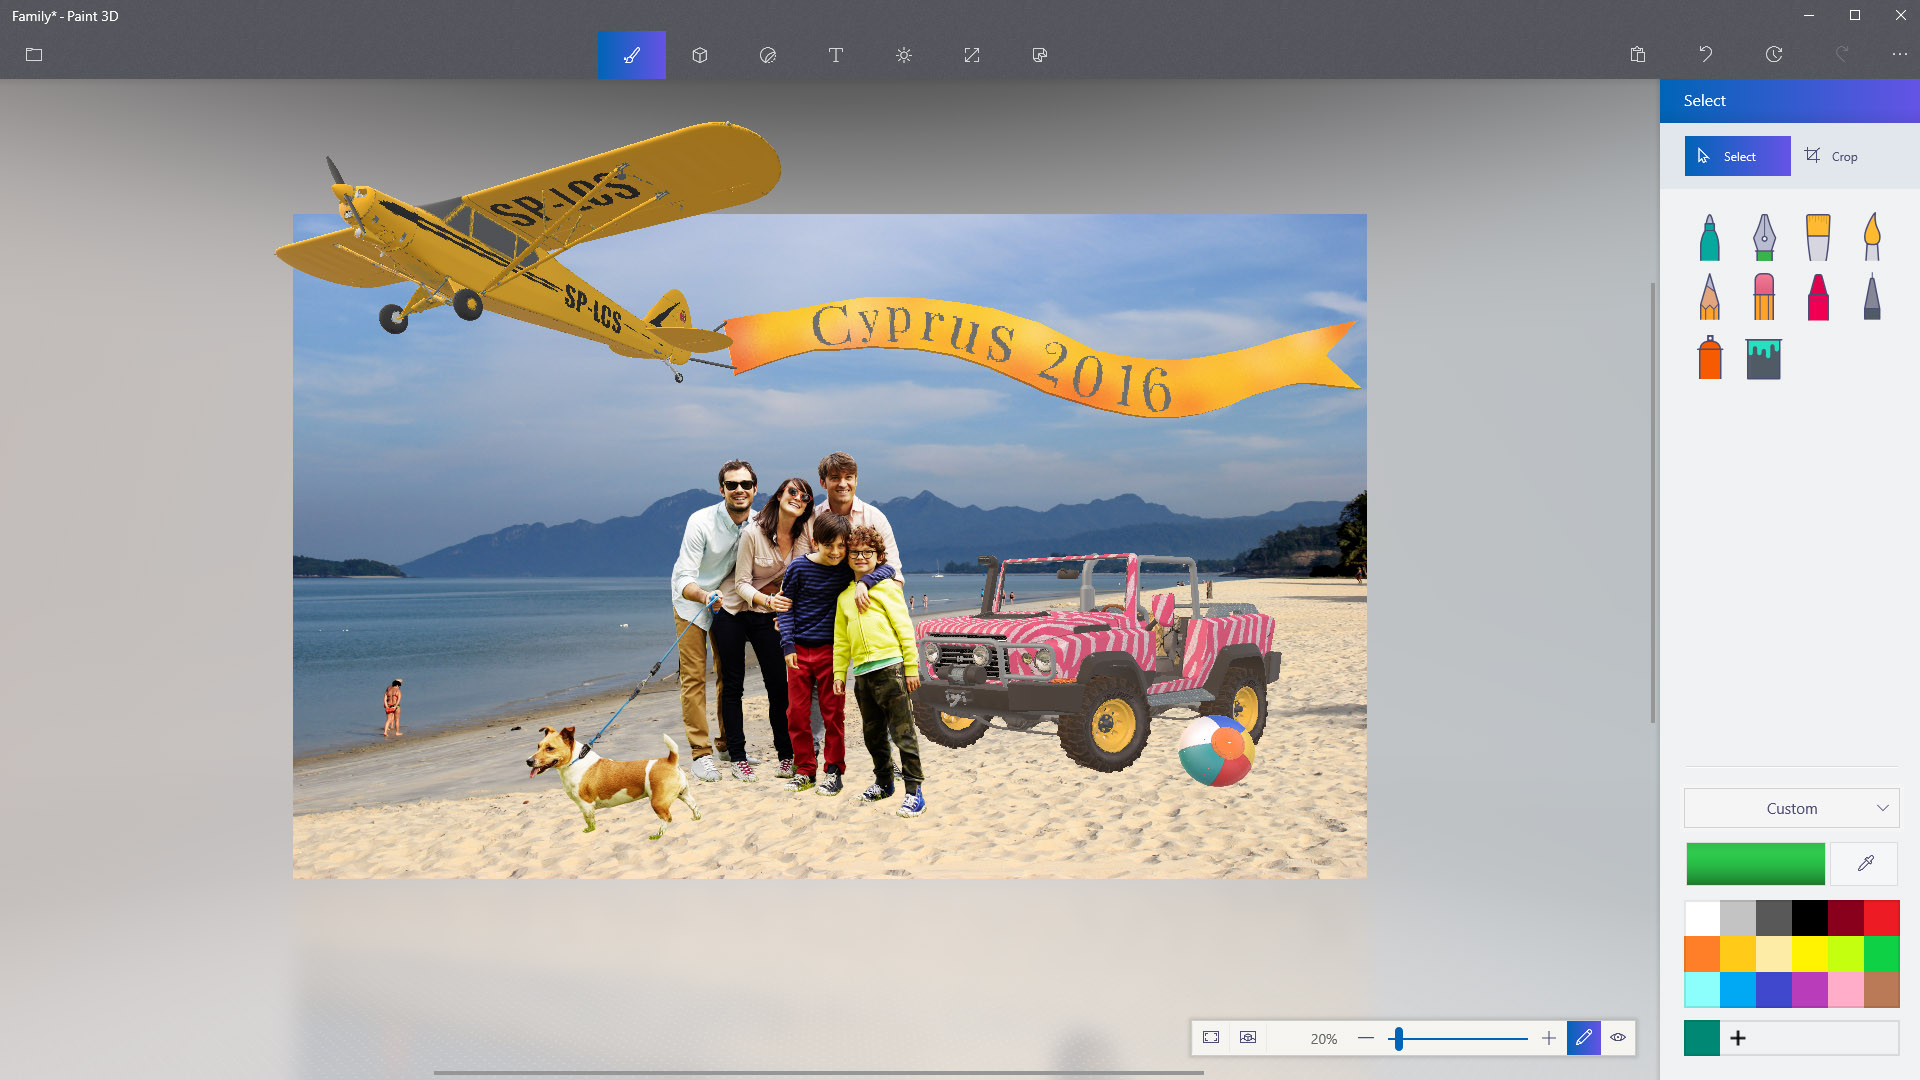 Family photo being cropped with Magic Select tool in Paint 3D